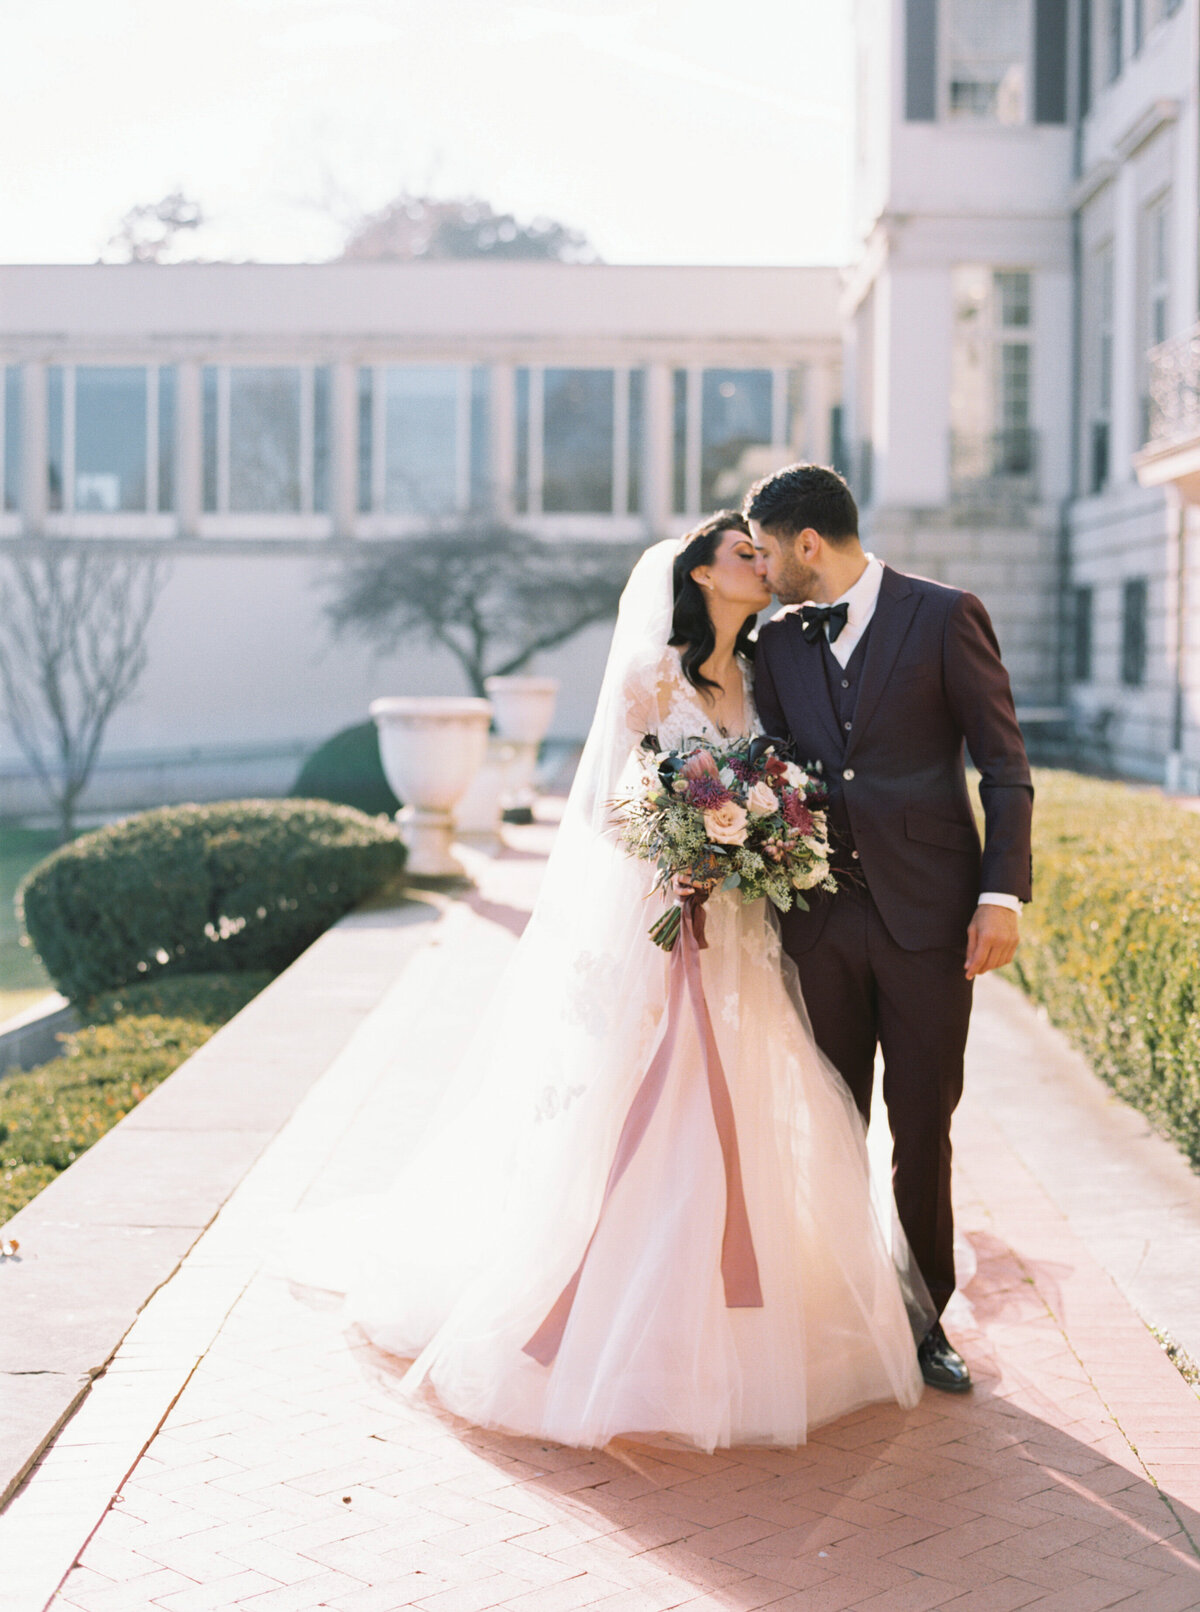 Kaylea Moreno_wedding gallery - Rami-Cassandra-Wedding-krmorenophoto-166